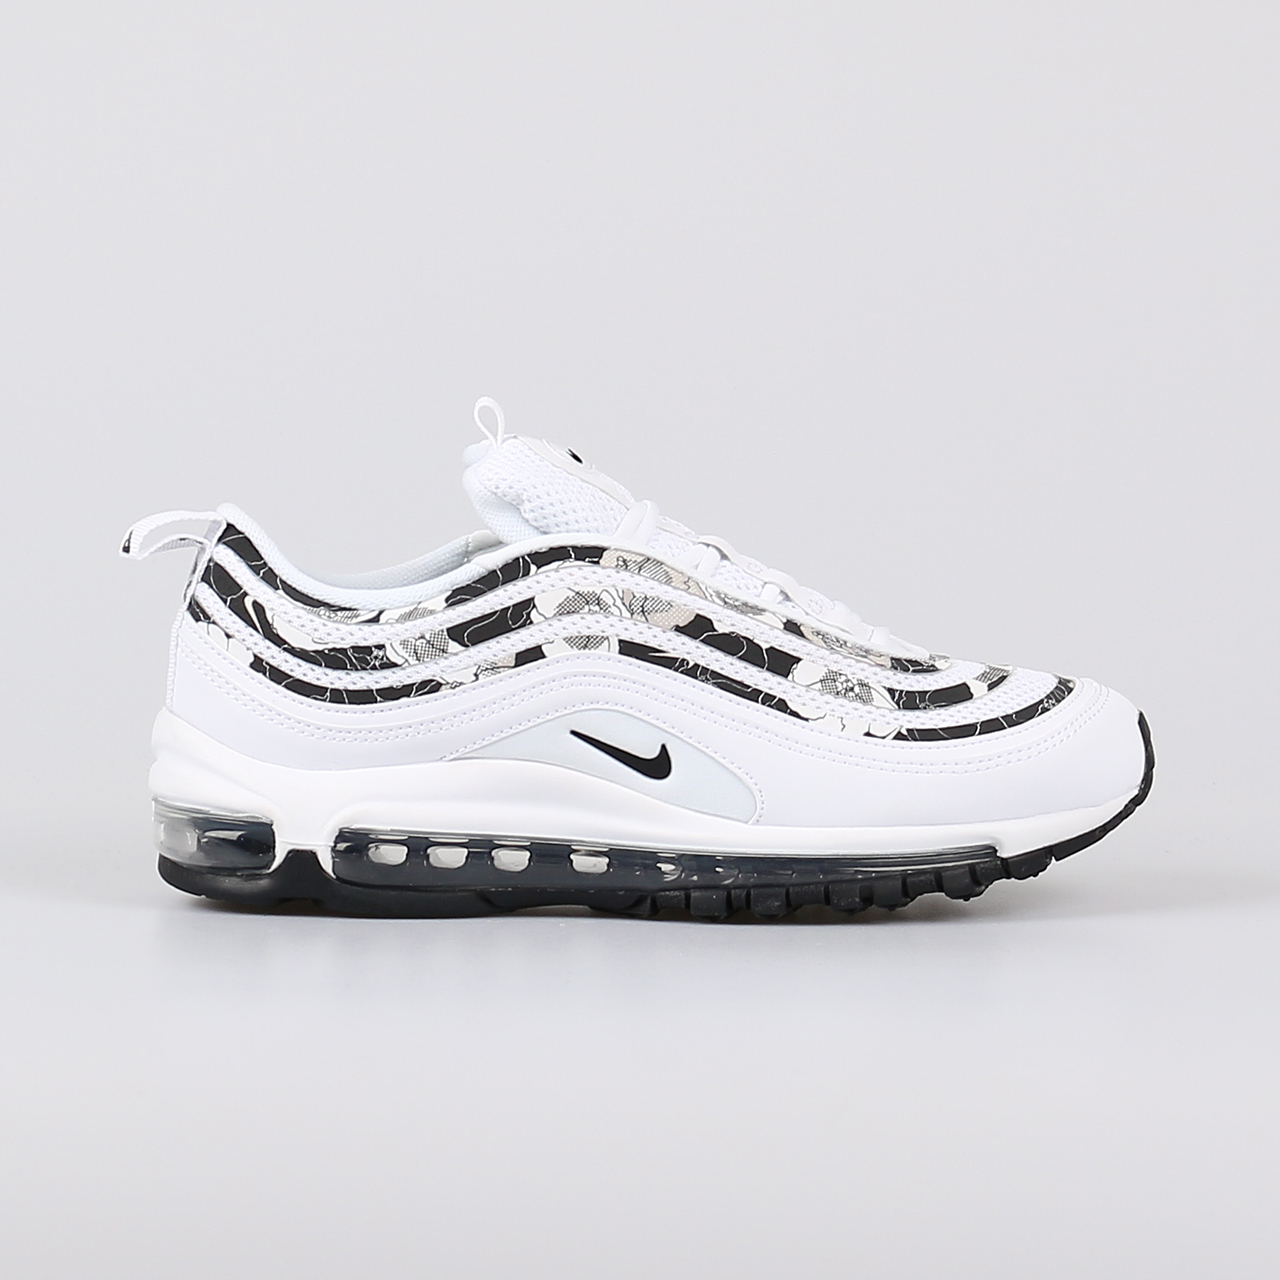 dames helemaal zwart nike air max 97 on sale 7caf8 5e3a1